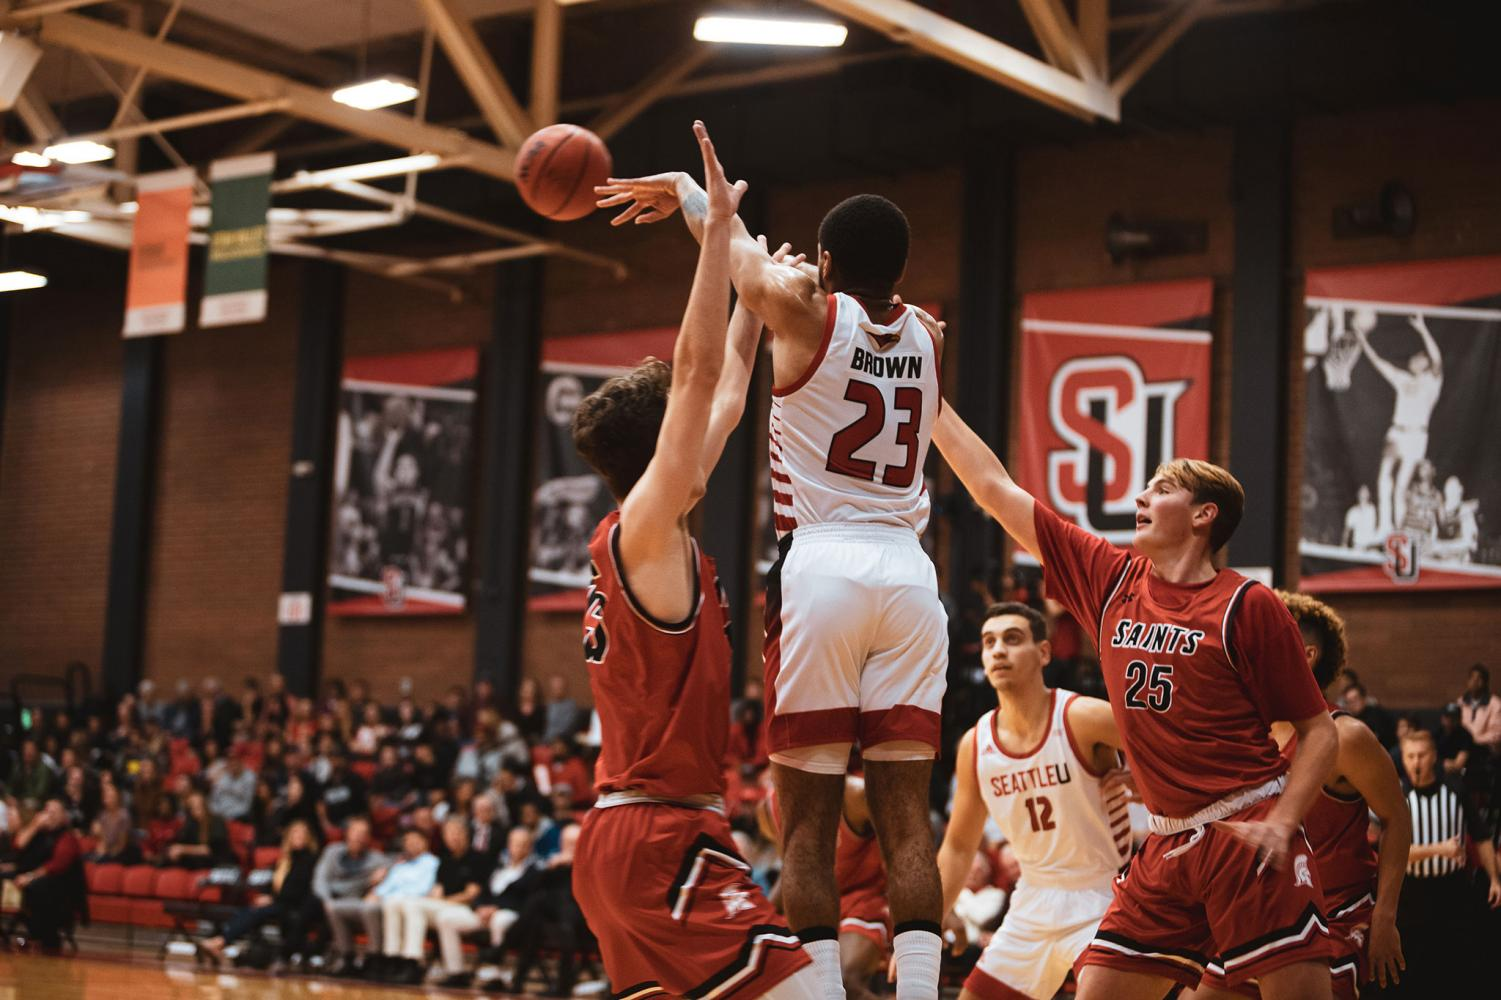 Terrell Brown finding room against Saint Martin's during their year opener on Tuesday Oct. 22, which resulted in a Redhawk win at 92-71